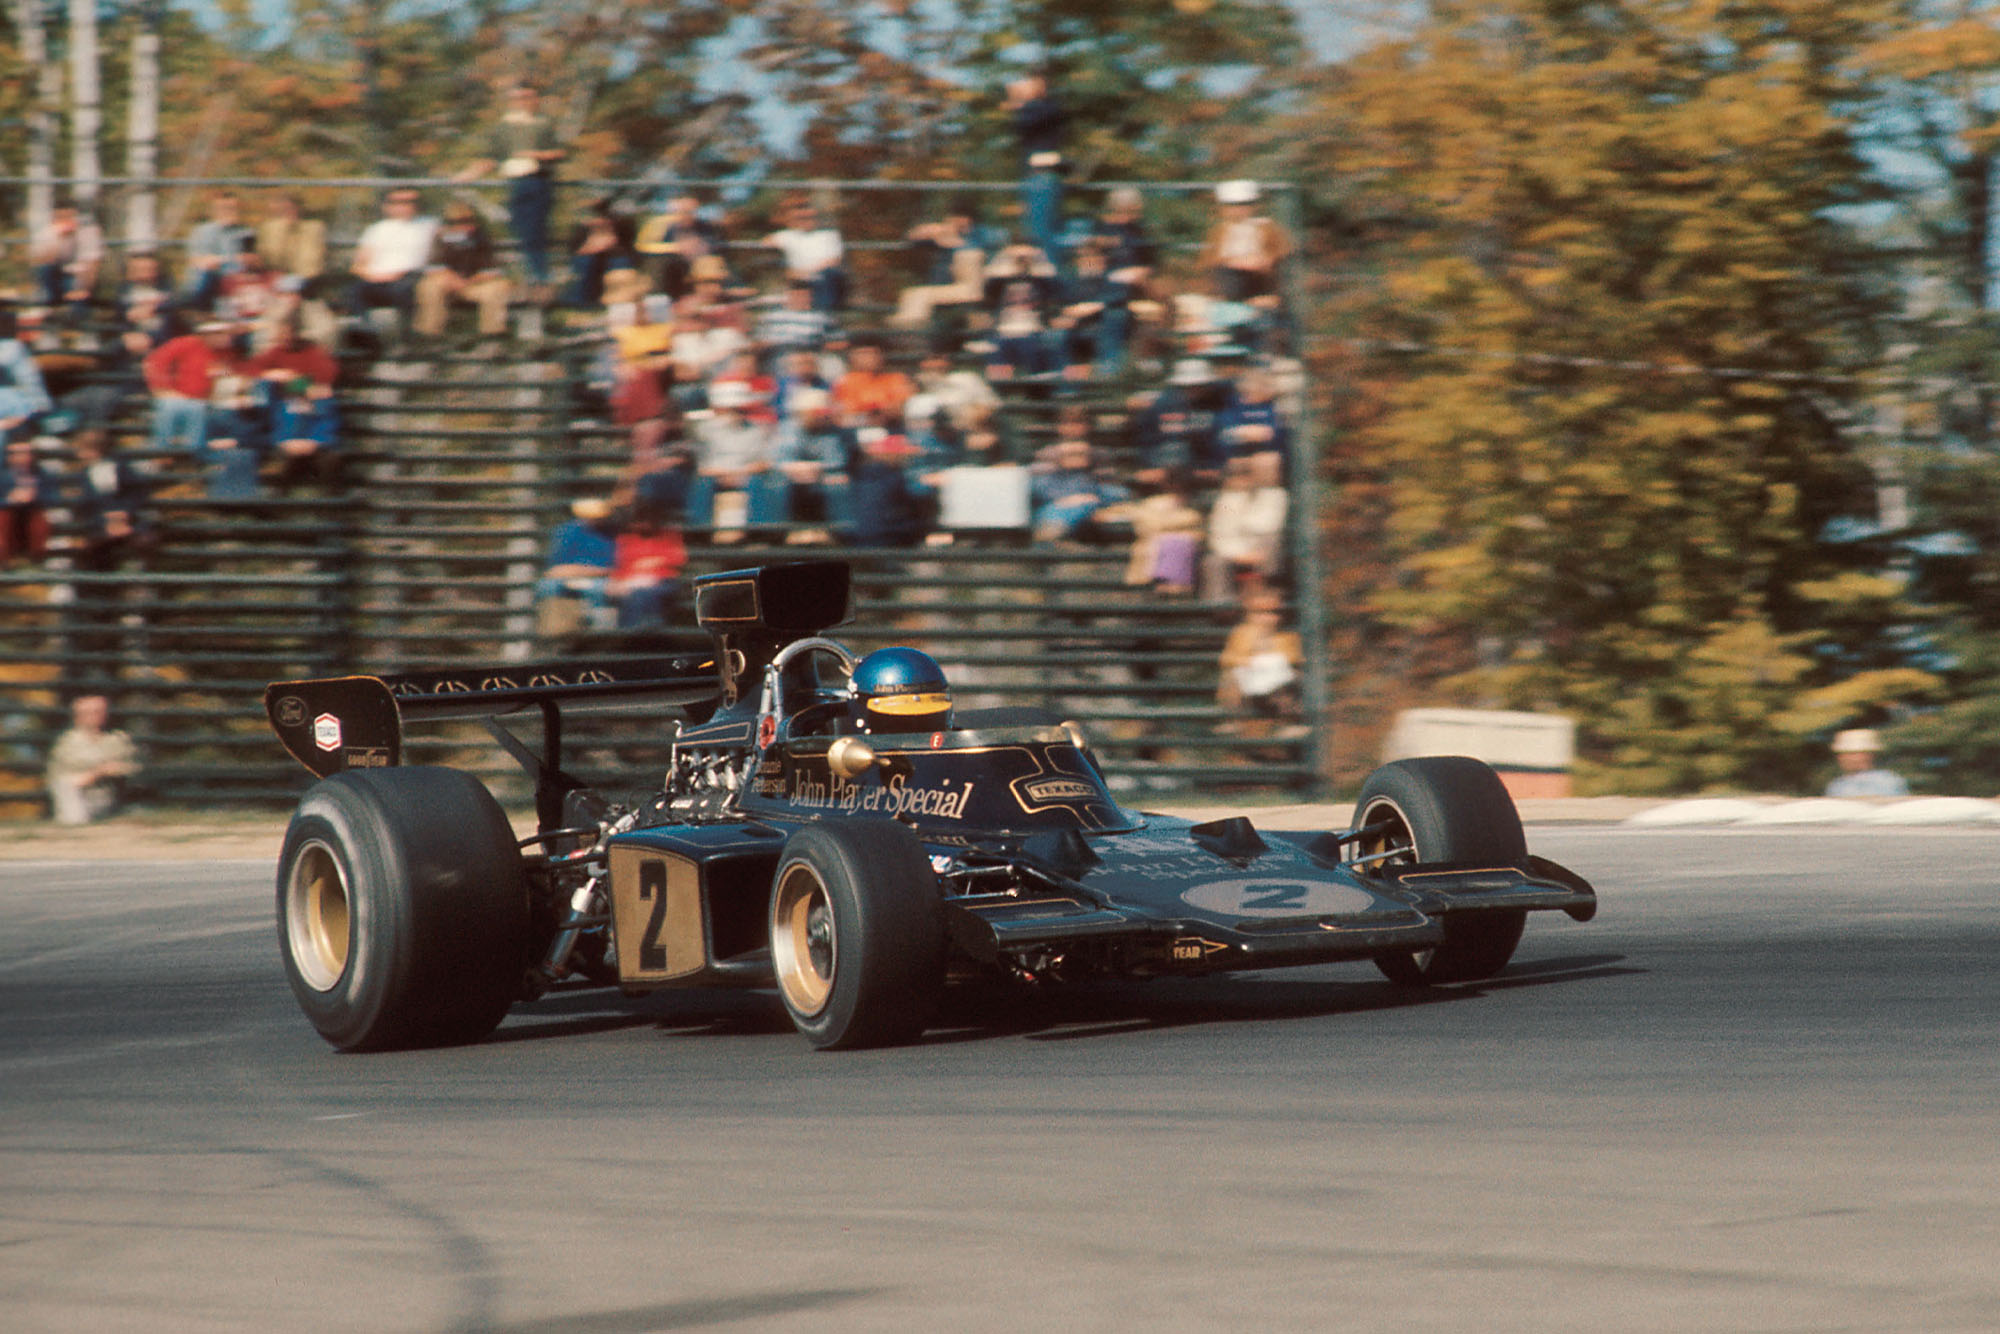 Ronnie Peterson driving the Lotus at Watkins Glen.